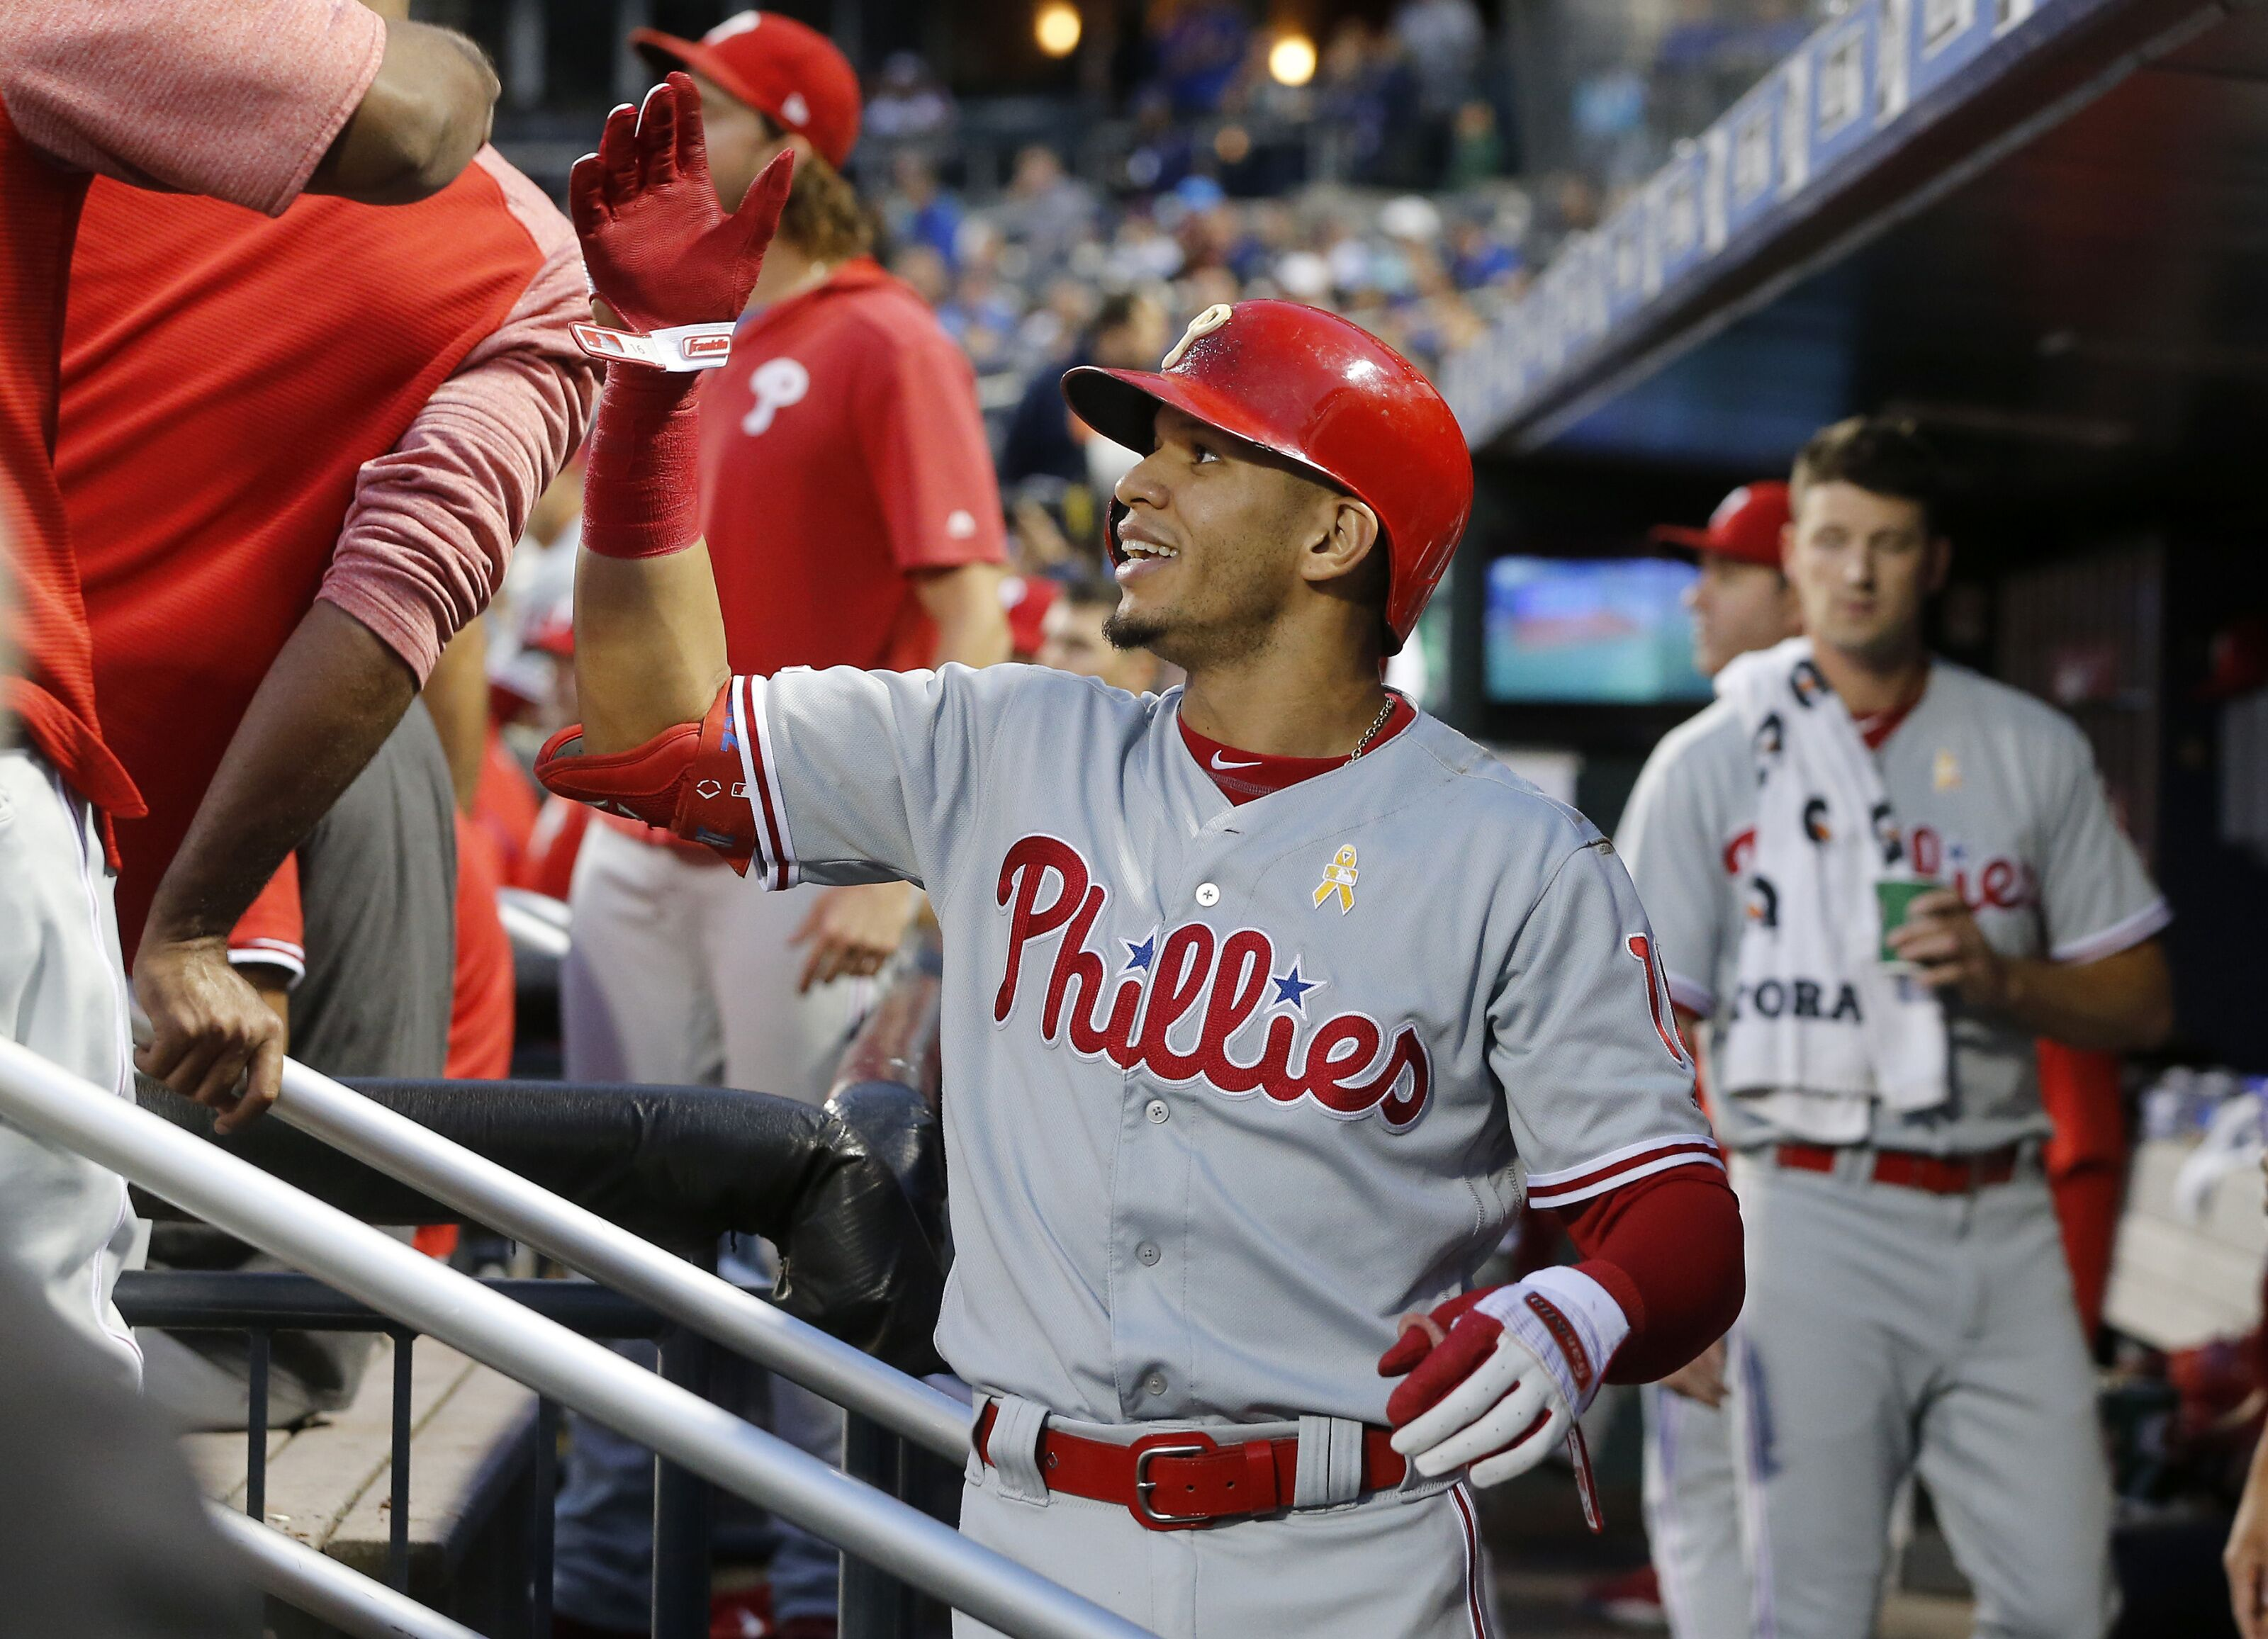 Phillies have given no reason to believe in them this season